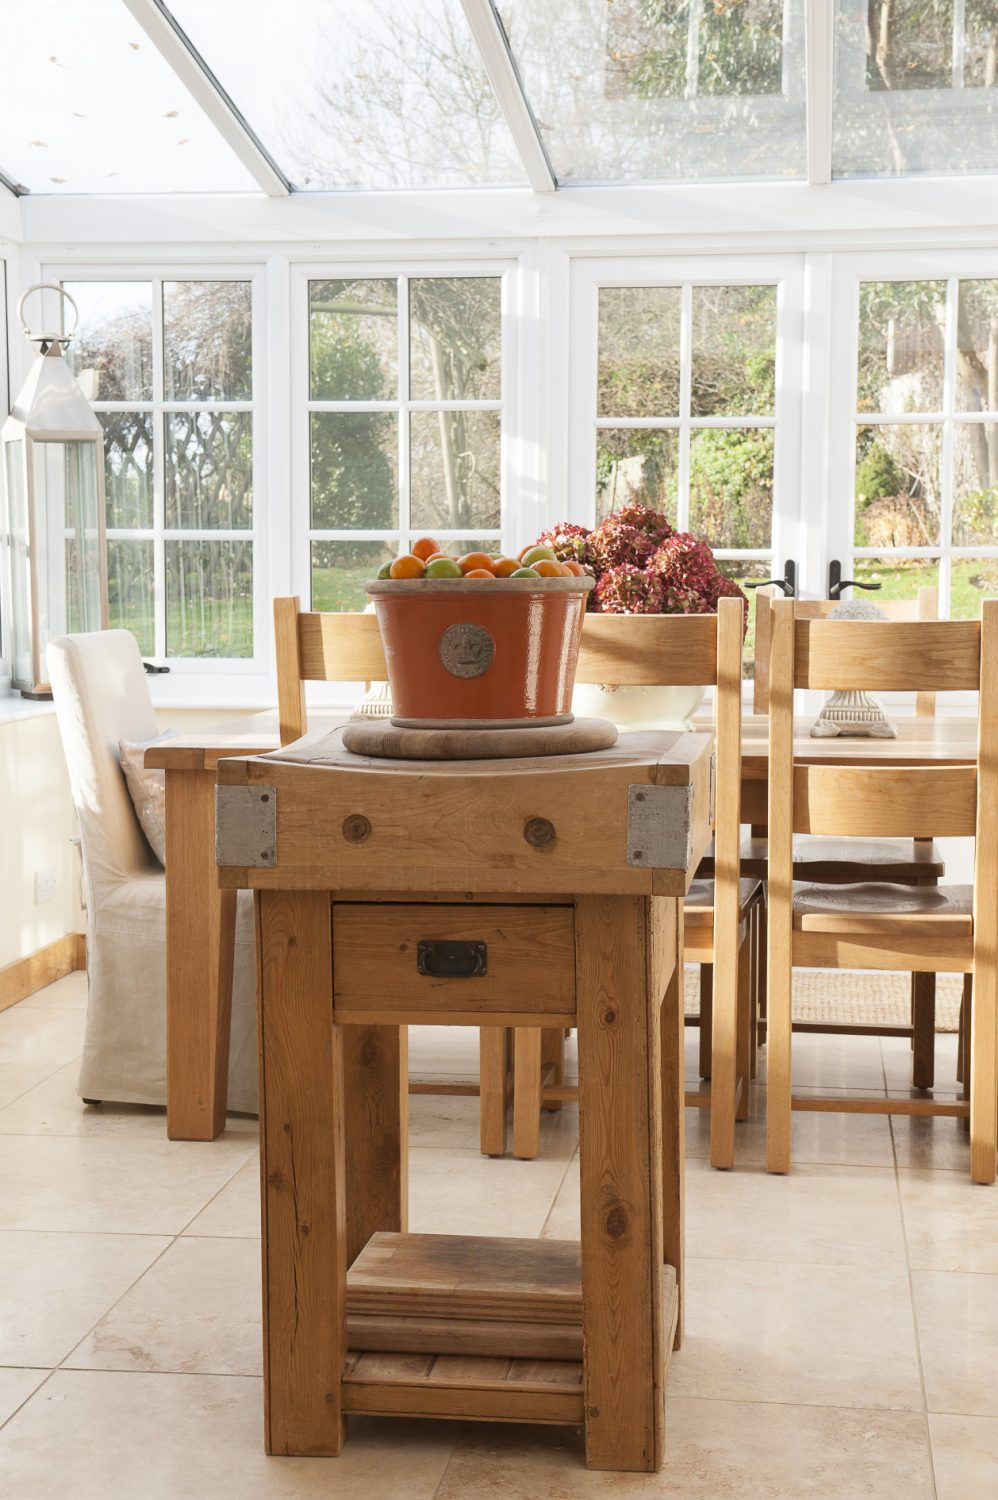 Centrepiece of the kitchen is a contemporary butcher's block – a birthday present to Chris who is the family chef